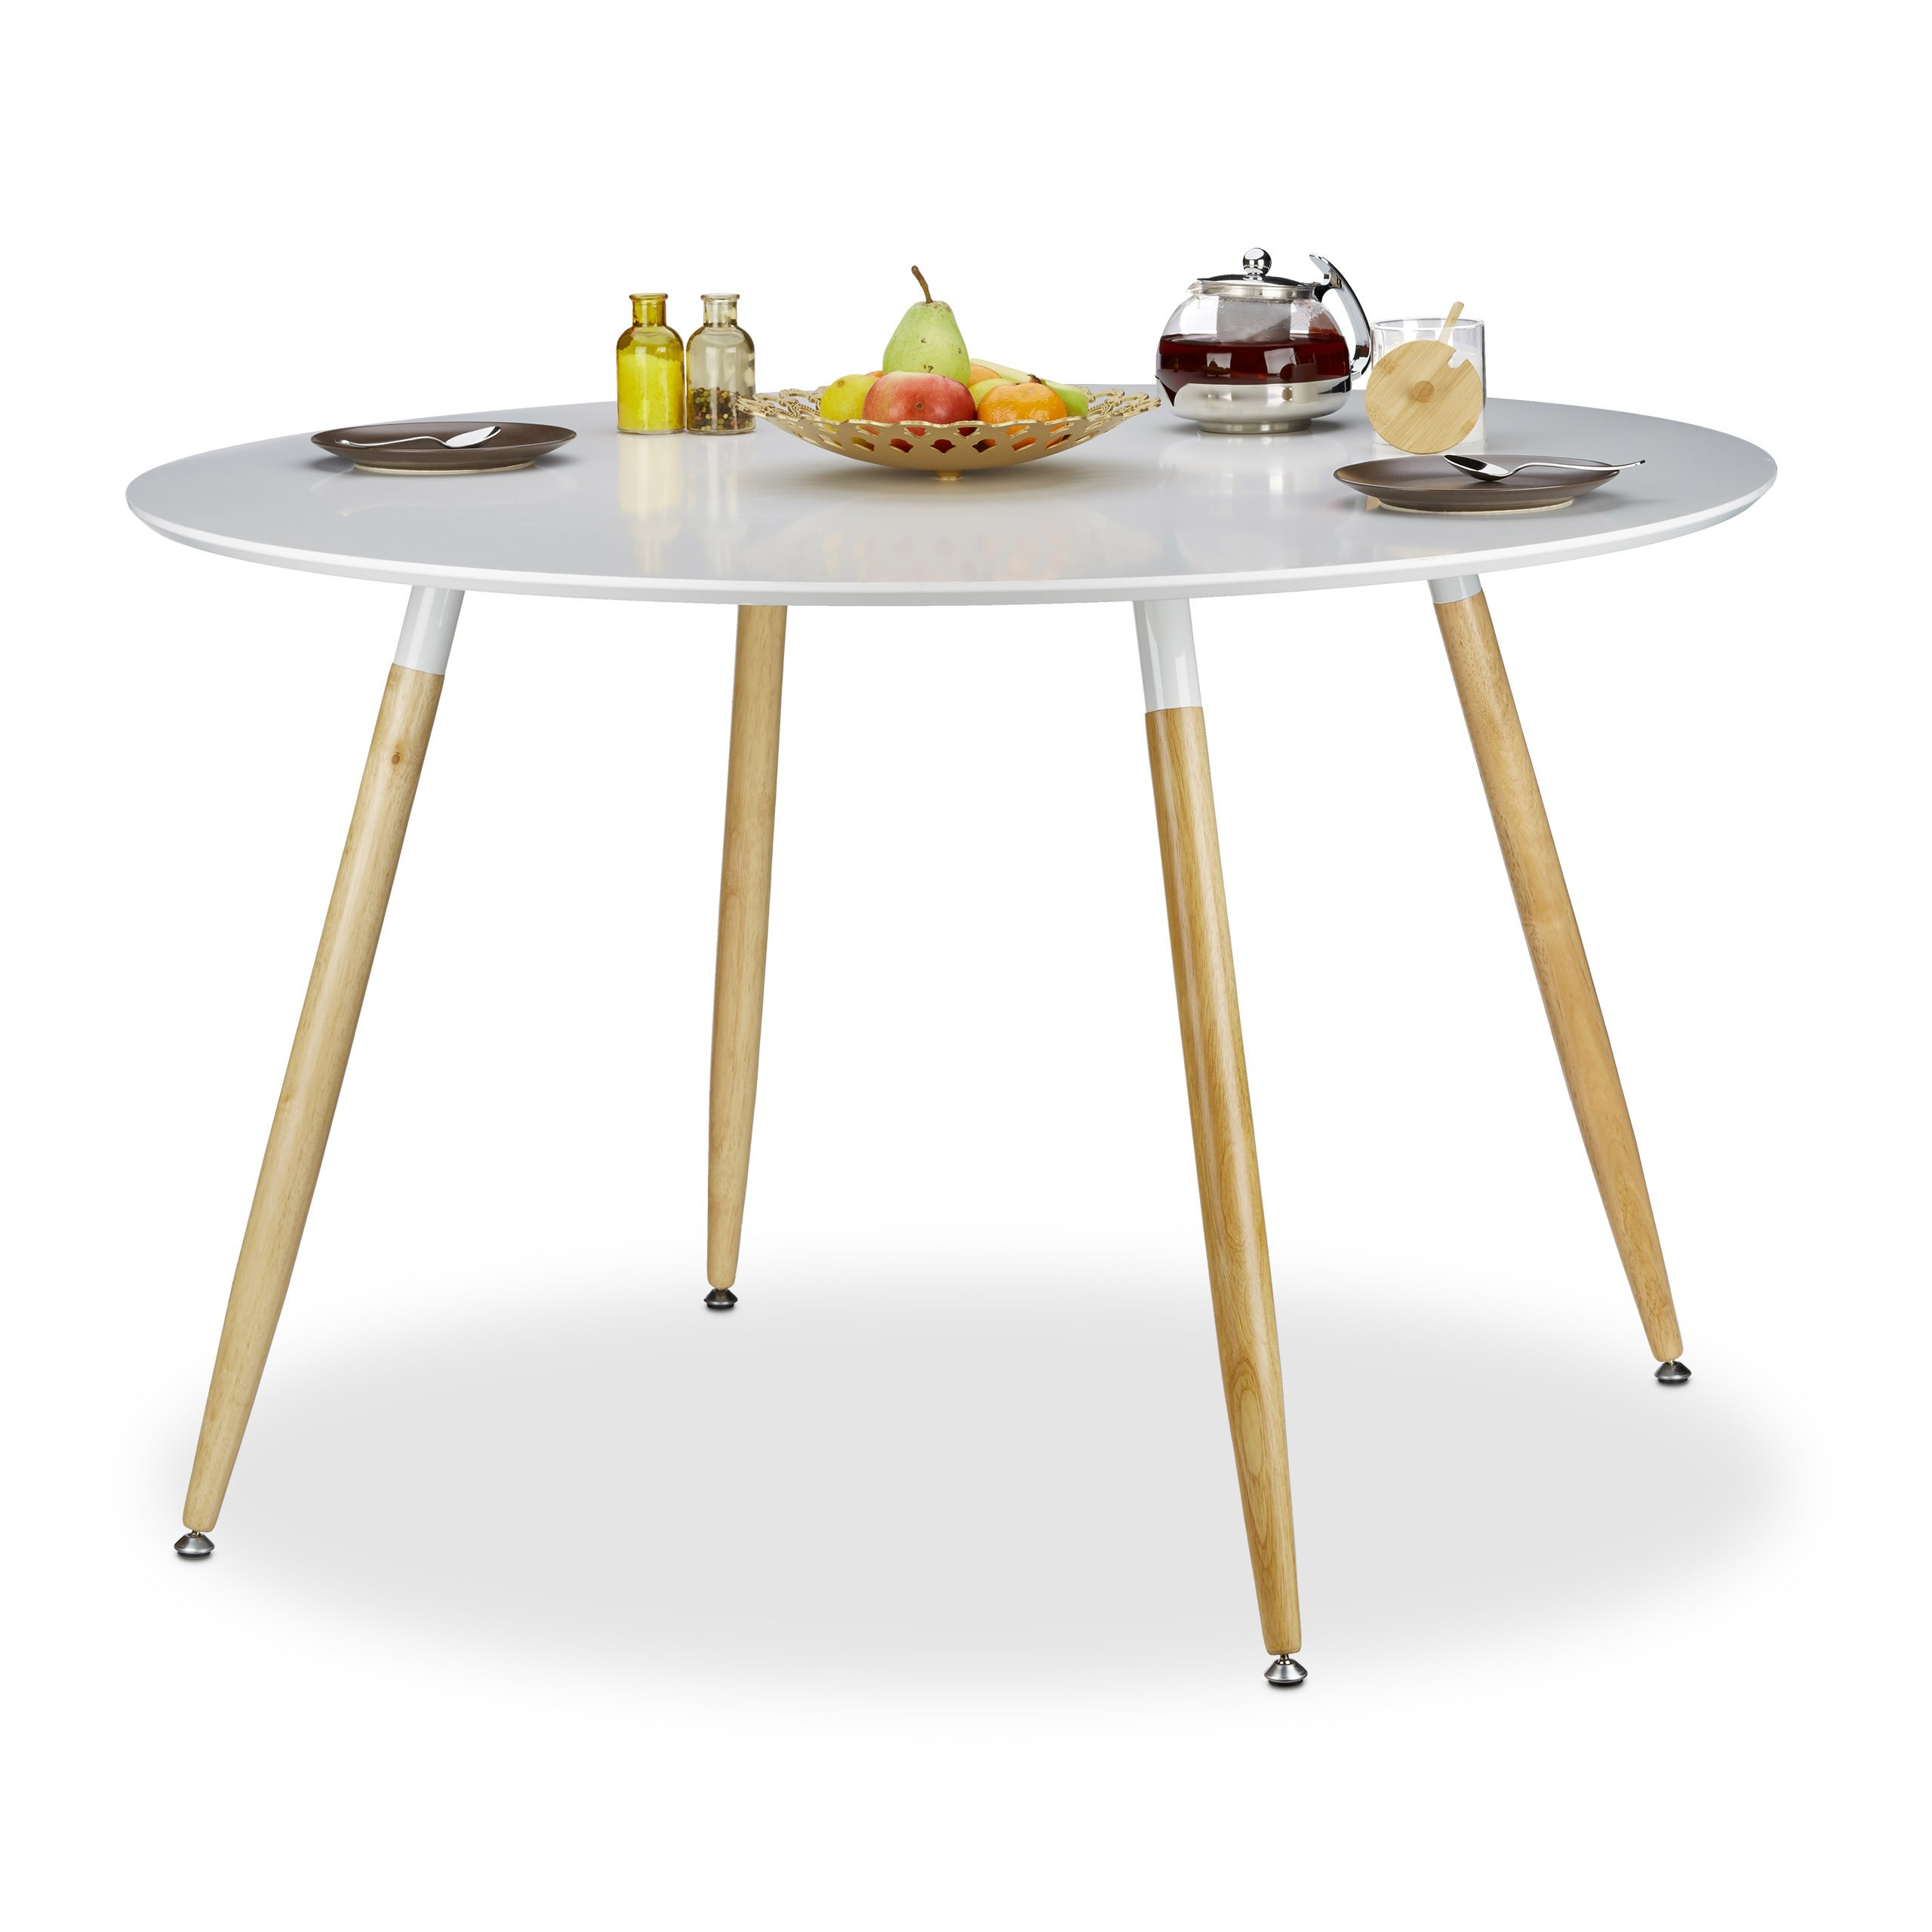 relaxdays table manger ronde arvid style scandinave 6 8 personnes hxd 75 x